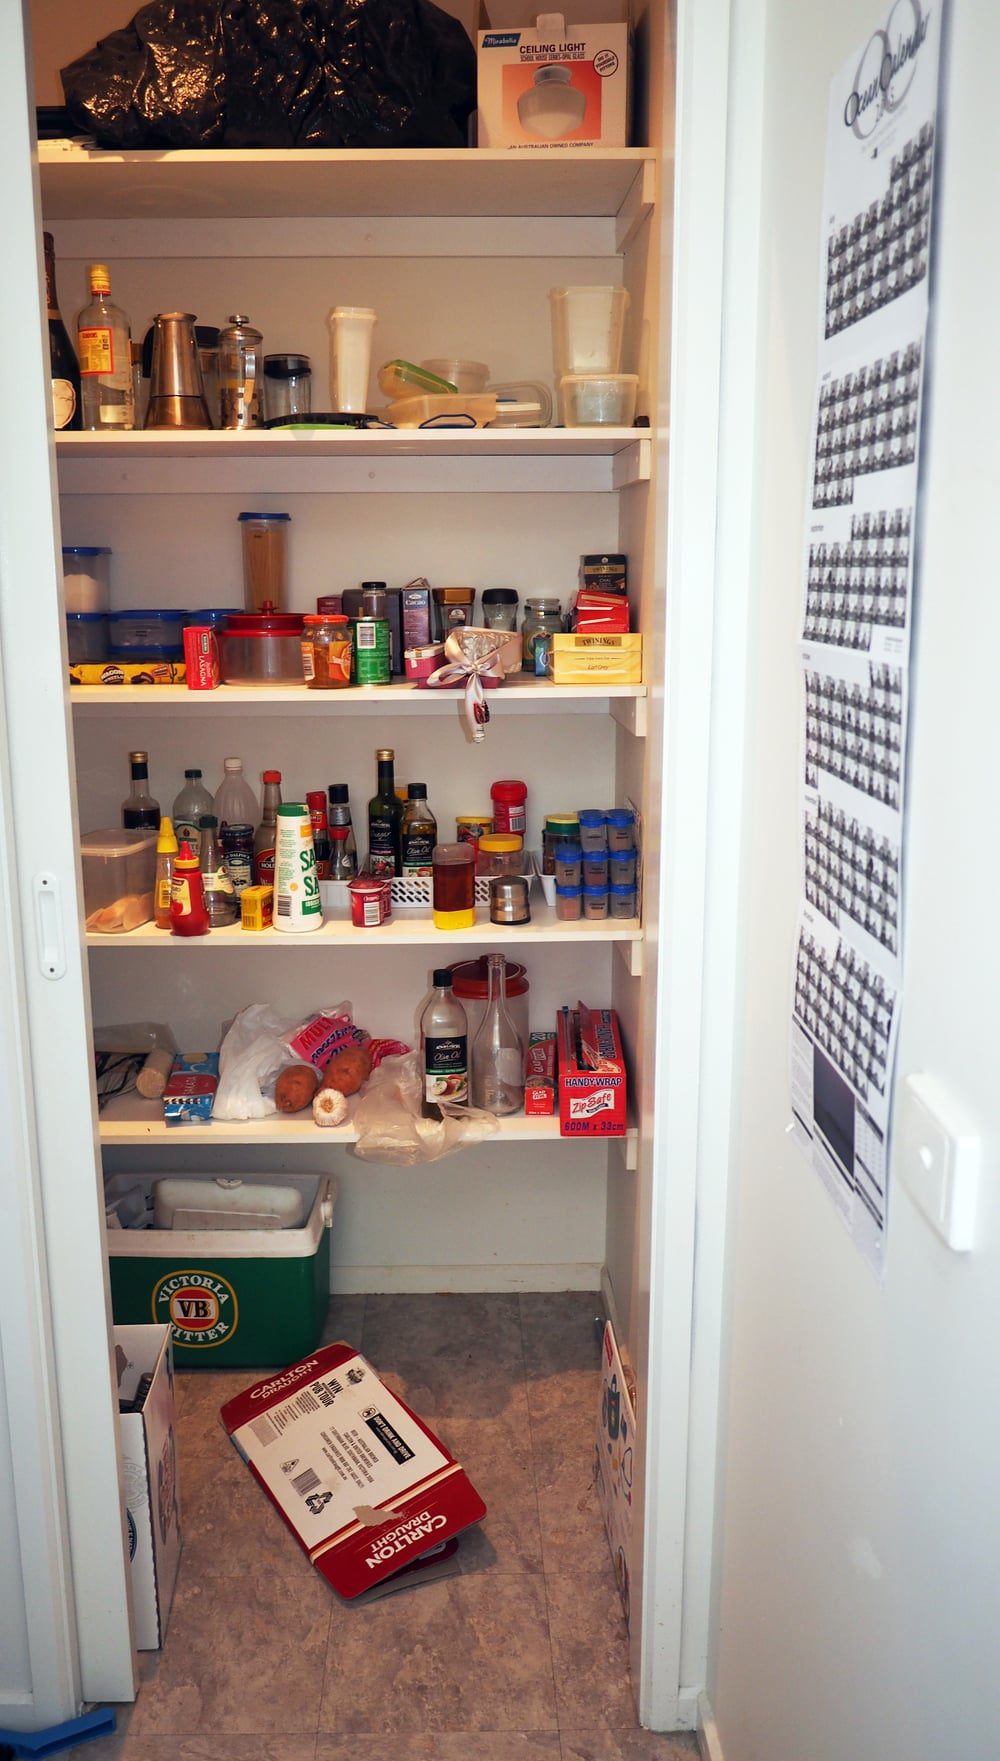 Does your pantry look like this? Messy, cluttered and disorganised? Click through to read about the full pantry makeover with tips and tricks for organising your pantry